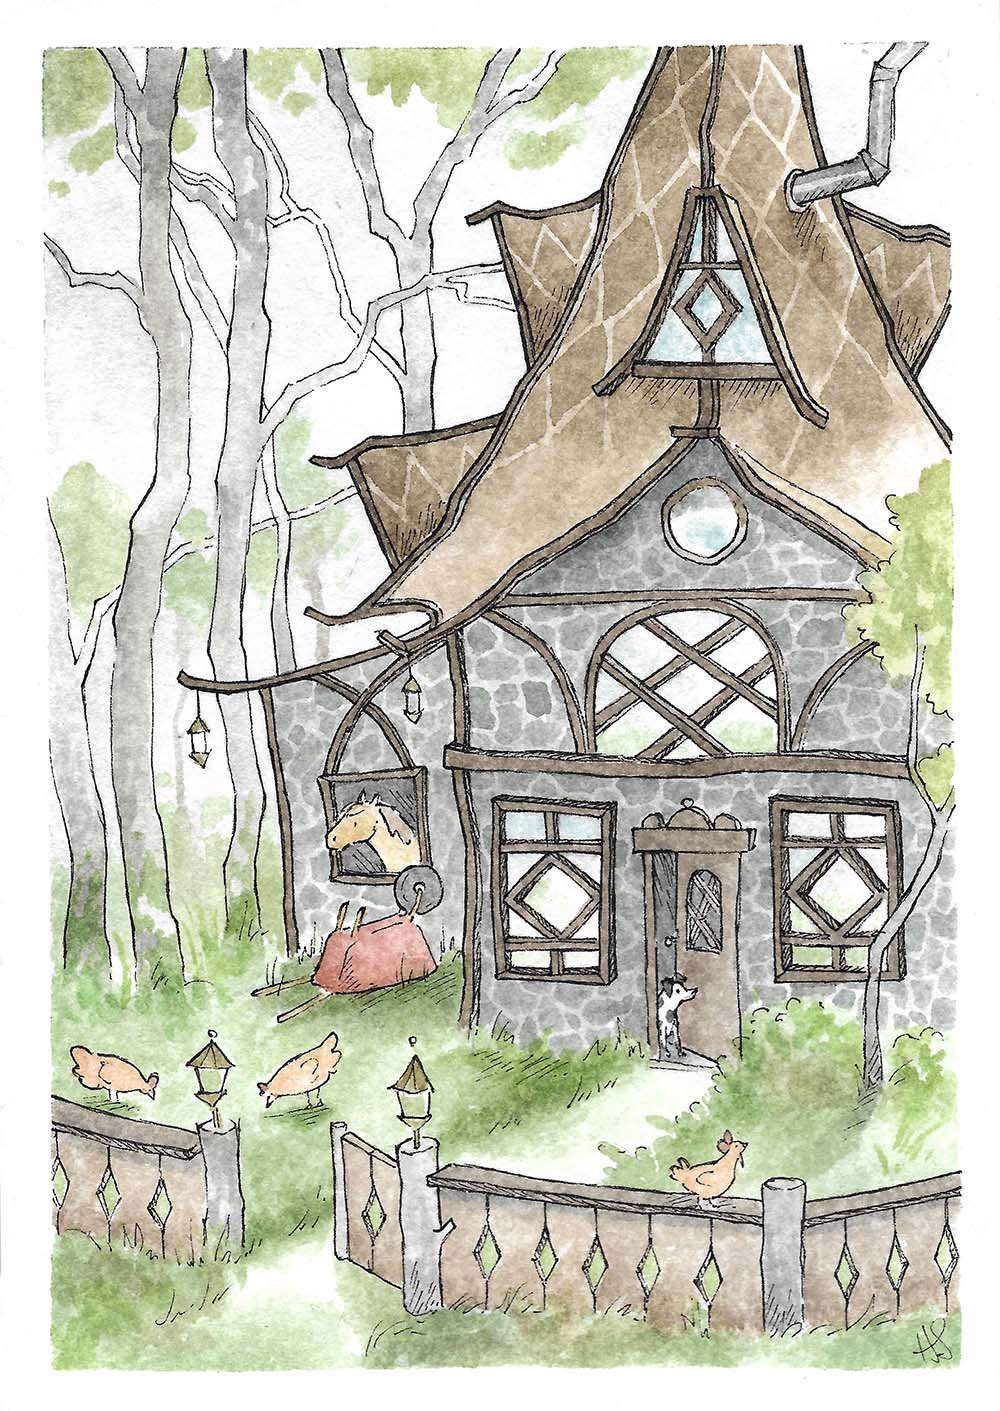 The Cottage of the Spotted Dog, Hannah Sease